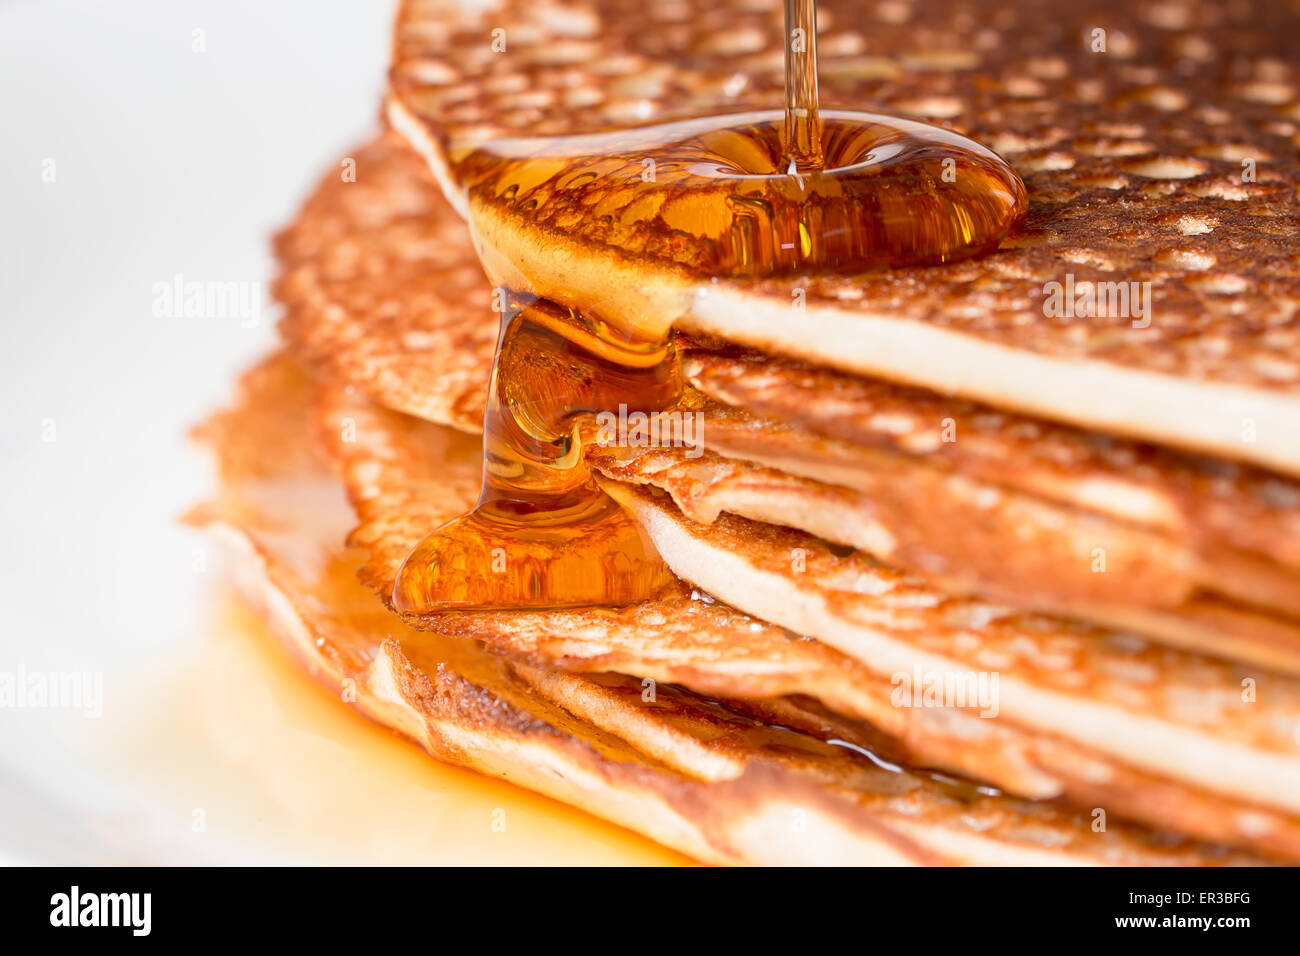 Stack of pancakes with maple syrup - Stock Image